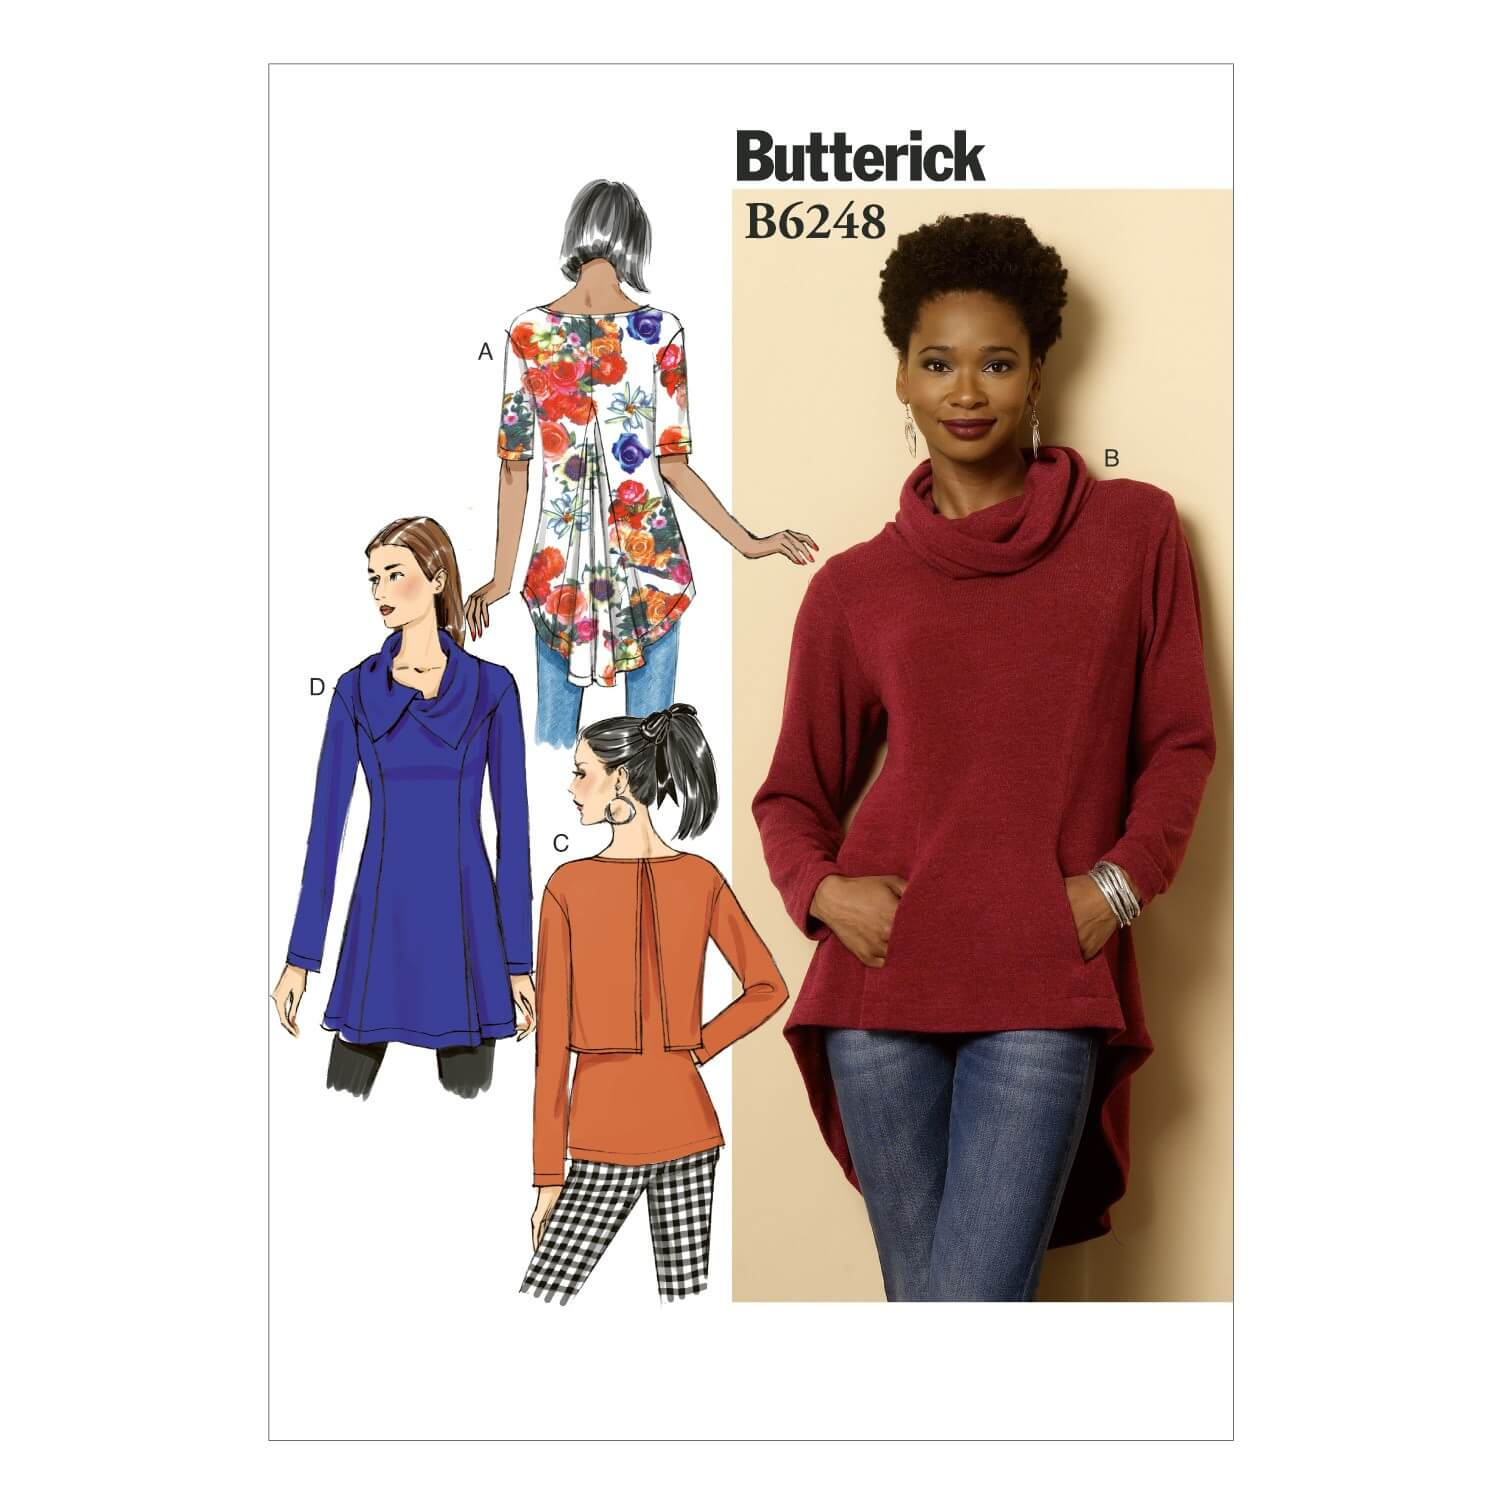 Butterick Sewing Pattern 6248 Misses' Pullover Tunic